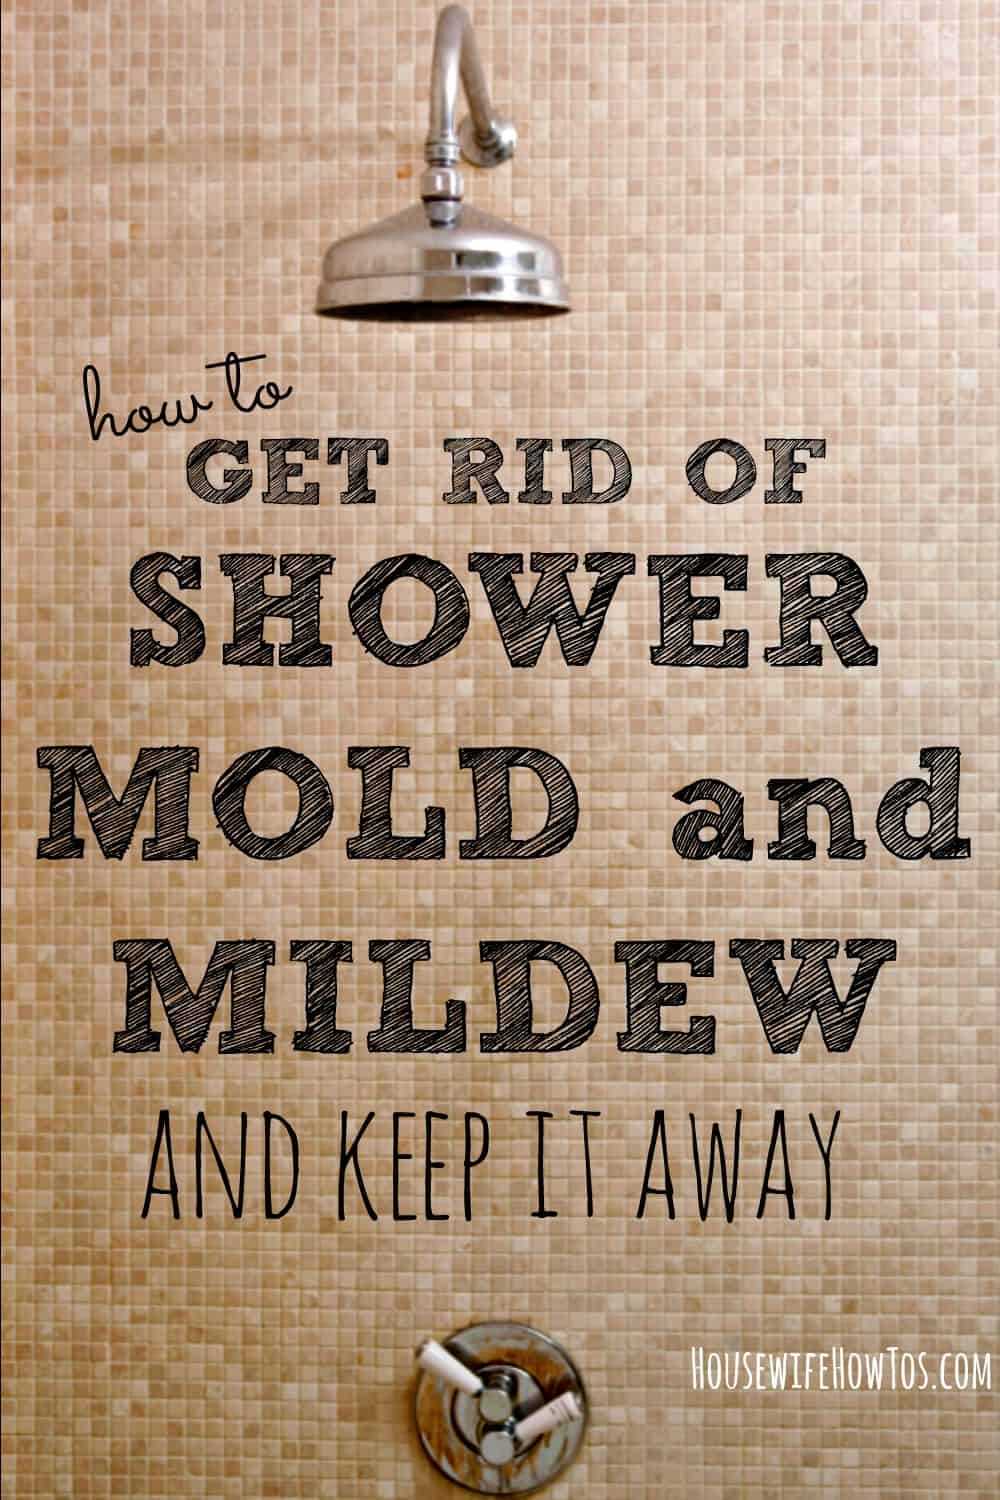 tired of fighting shower mold and mildew heres help get rid of mold and